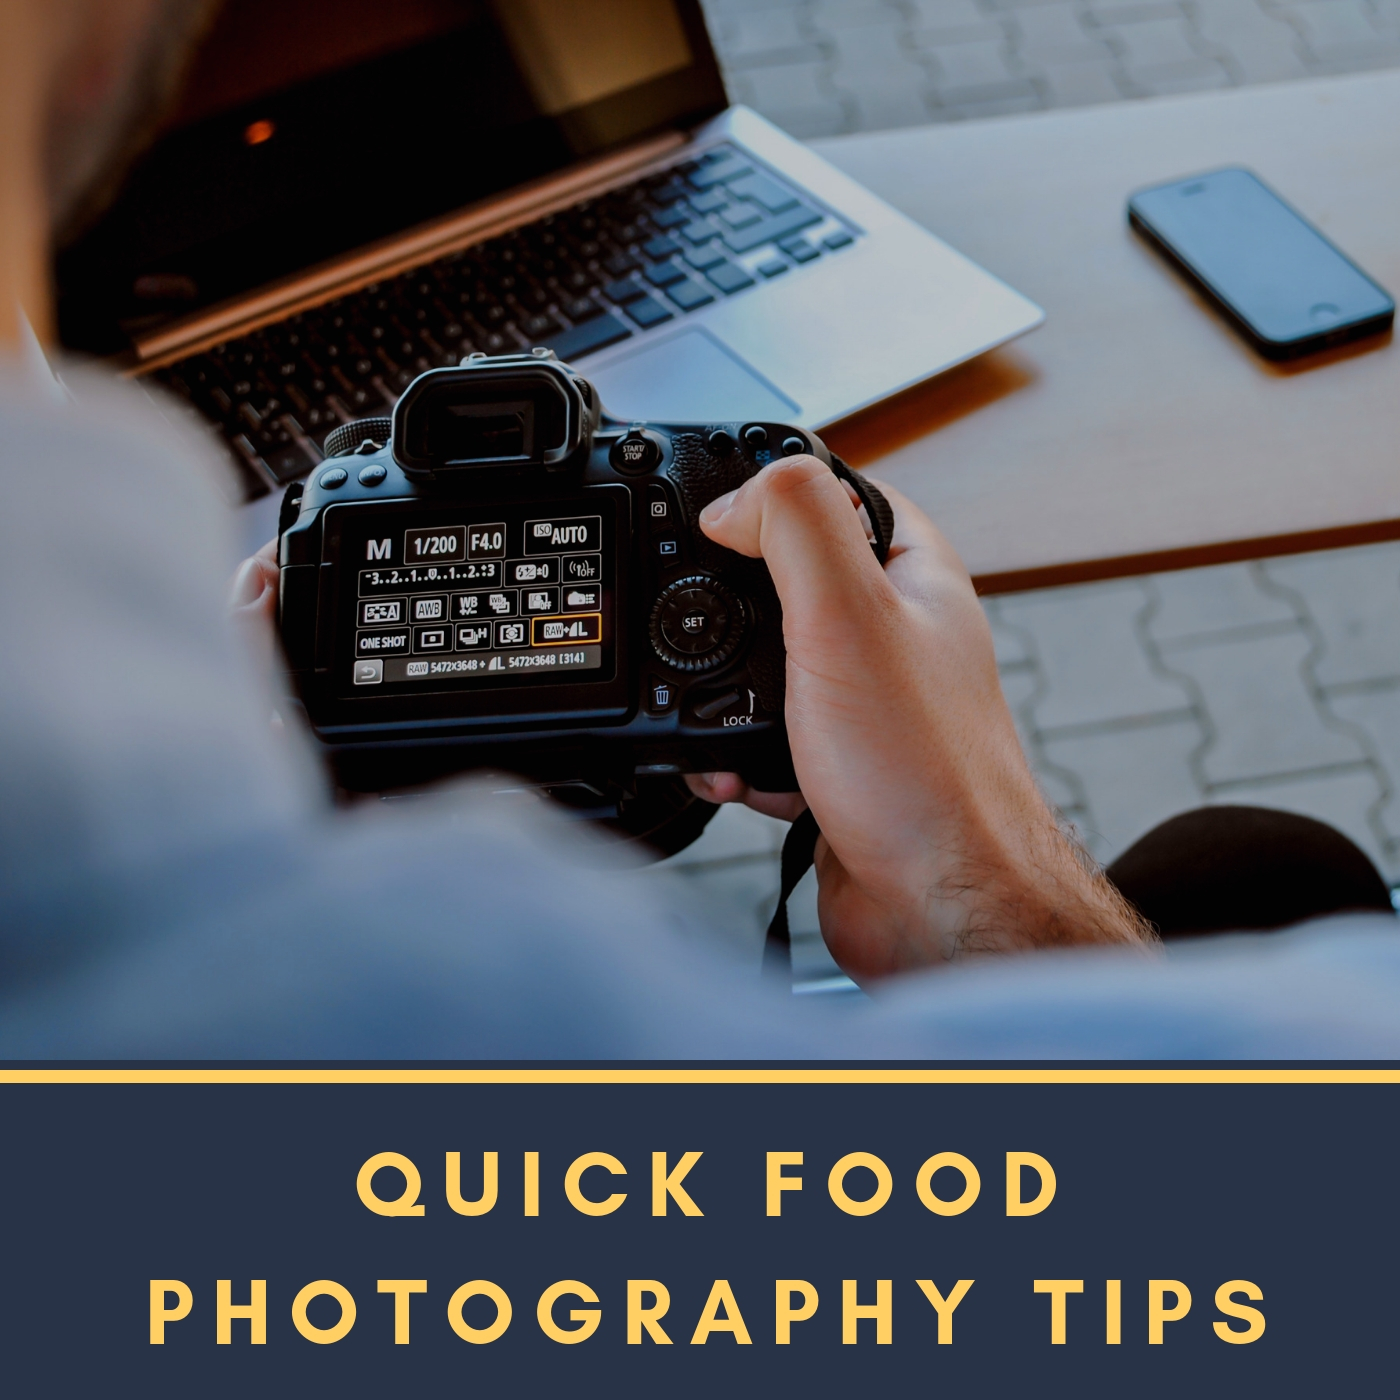 - 📷 Let's shoot!There are times when you need to take your own photos, either for business or personal purposes. Here's a quick food photography tips that can help you.